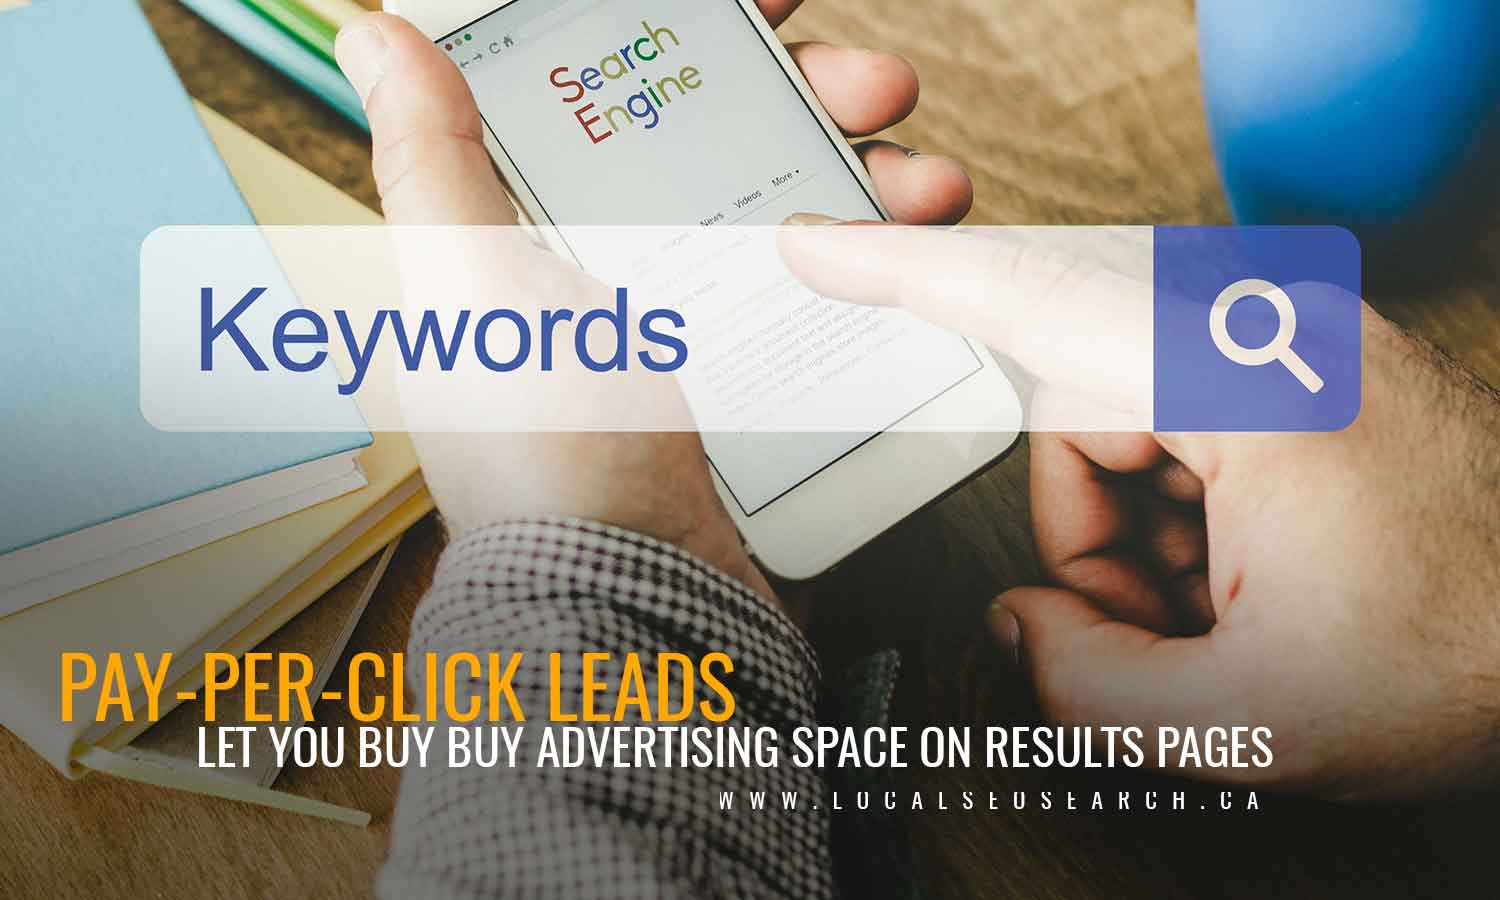 Pay-per-click leads let you buy buy advertising space on results pages